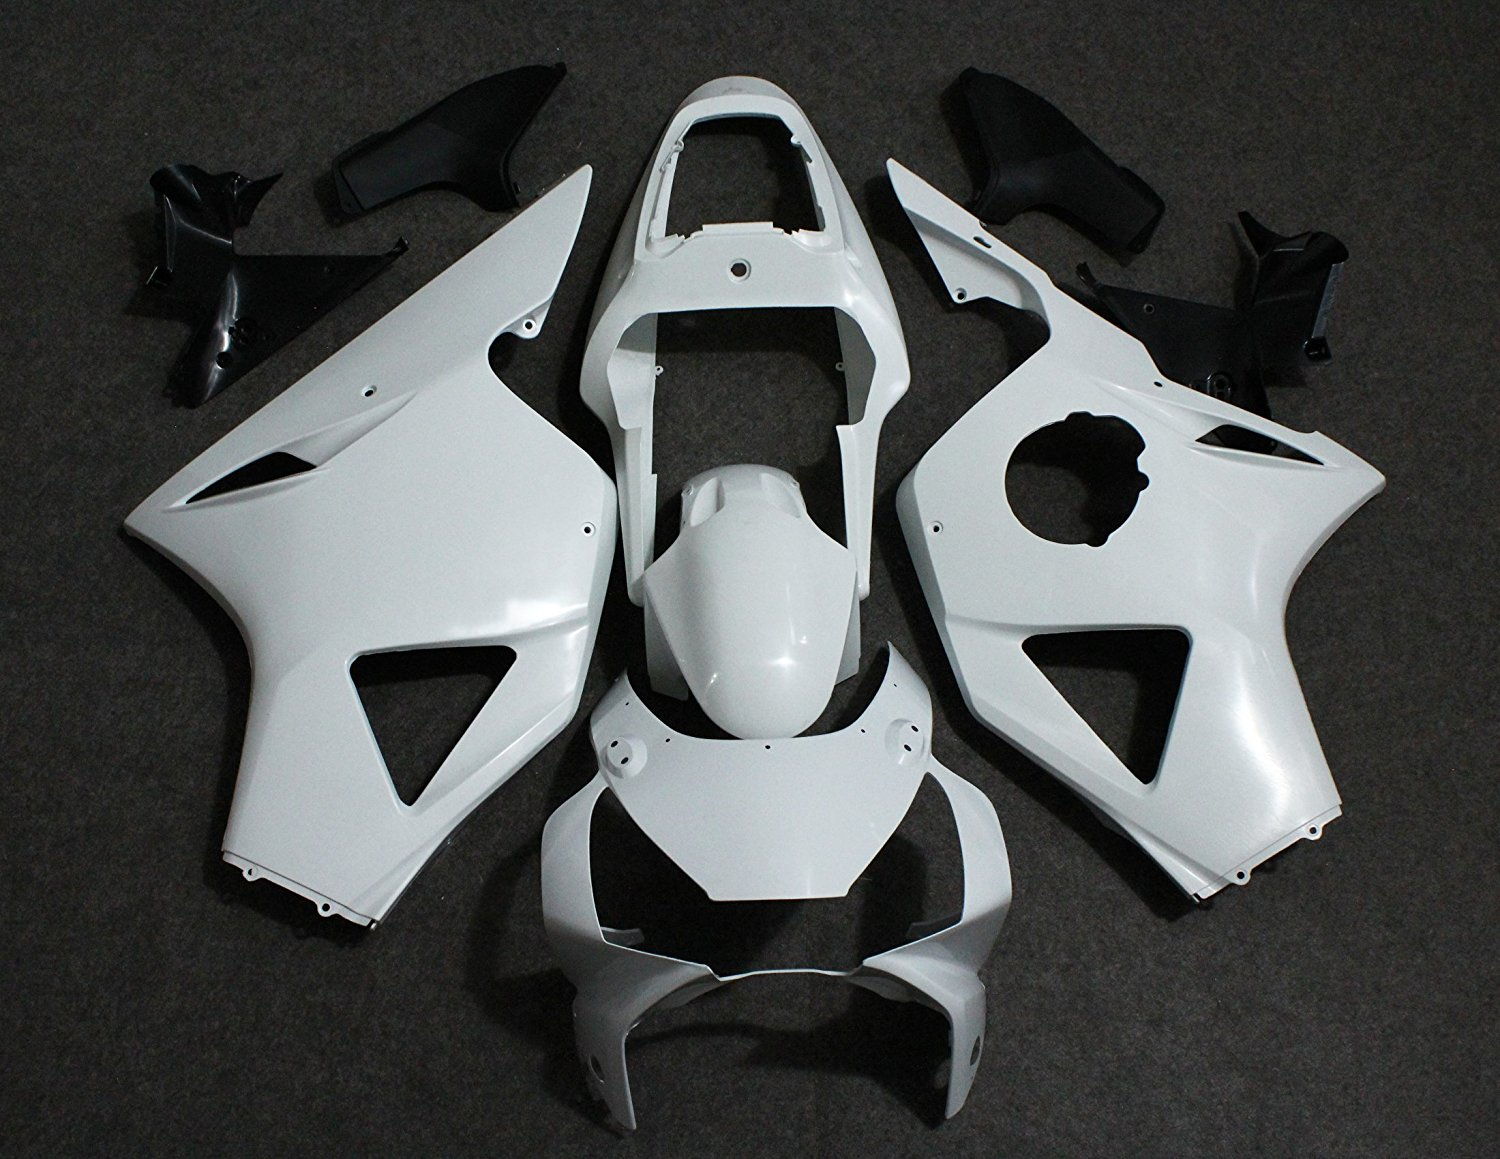 For Honda CBR 954 RR 2002 2003 ABS Plastic Motorcycle Unpainted Fairing Kit Bodywork CBR 954RR 02 03 for honda cbr 954 rr 2002 2003 cbr900rr abs plastic motorcycle fairing kit bodywork cbr 954rr 02 03 cbr 900 rr cb22